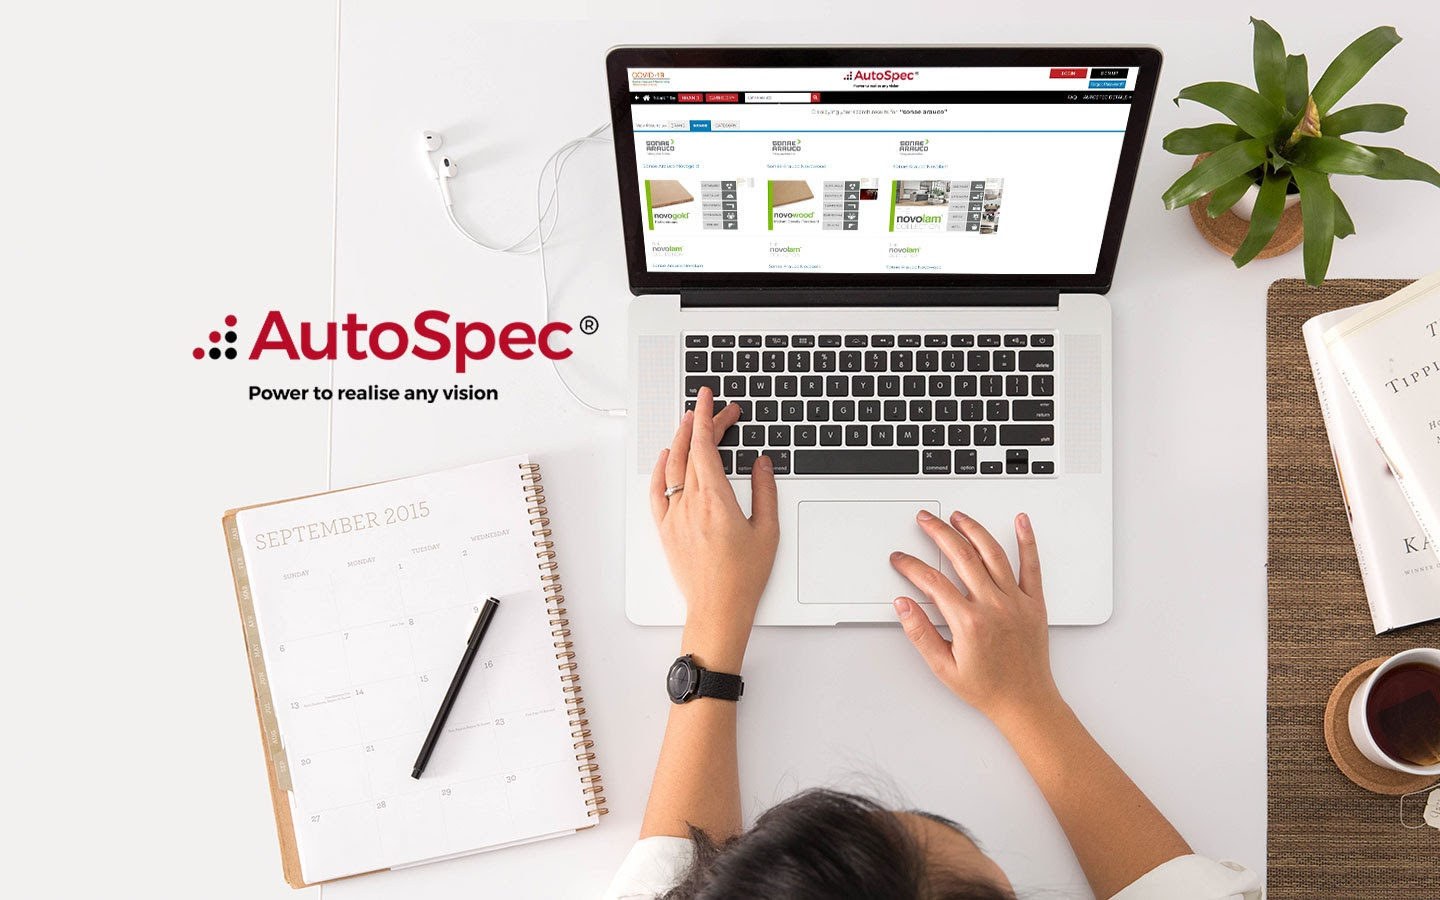 AutoSpec: what you need to know about the platform